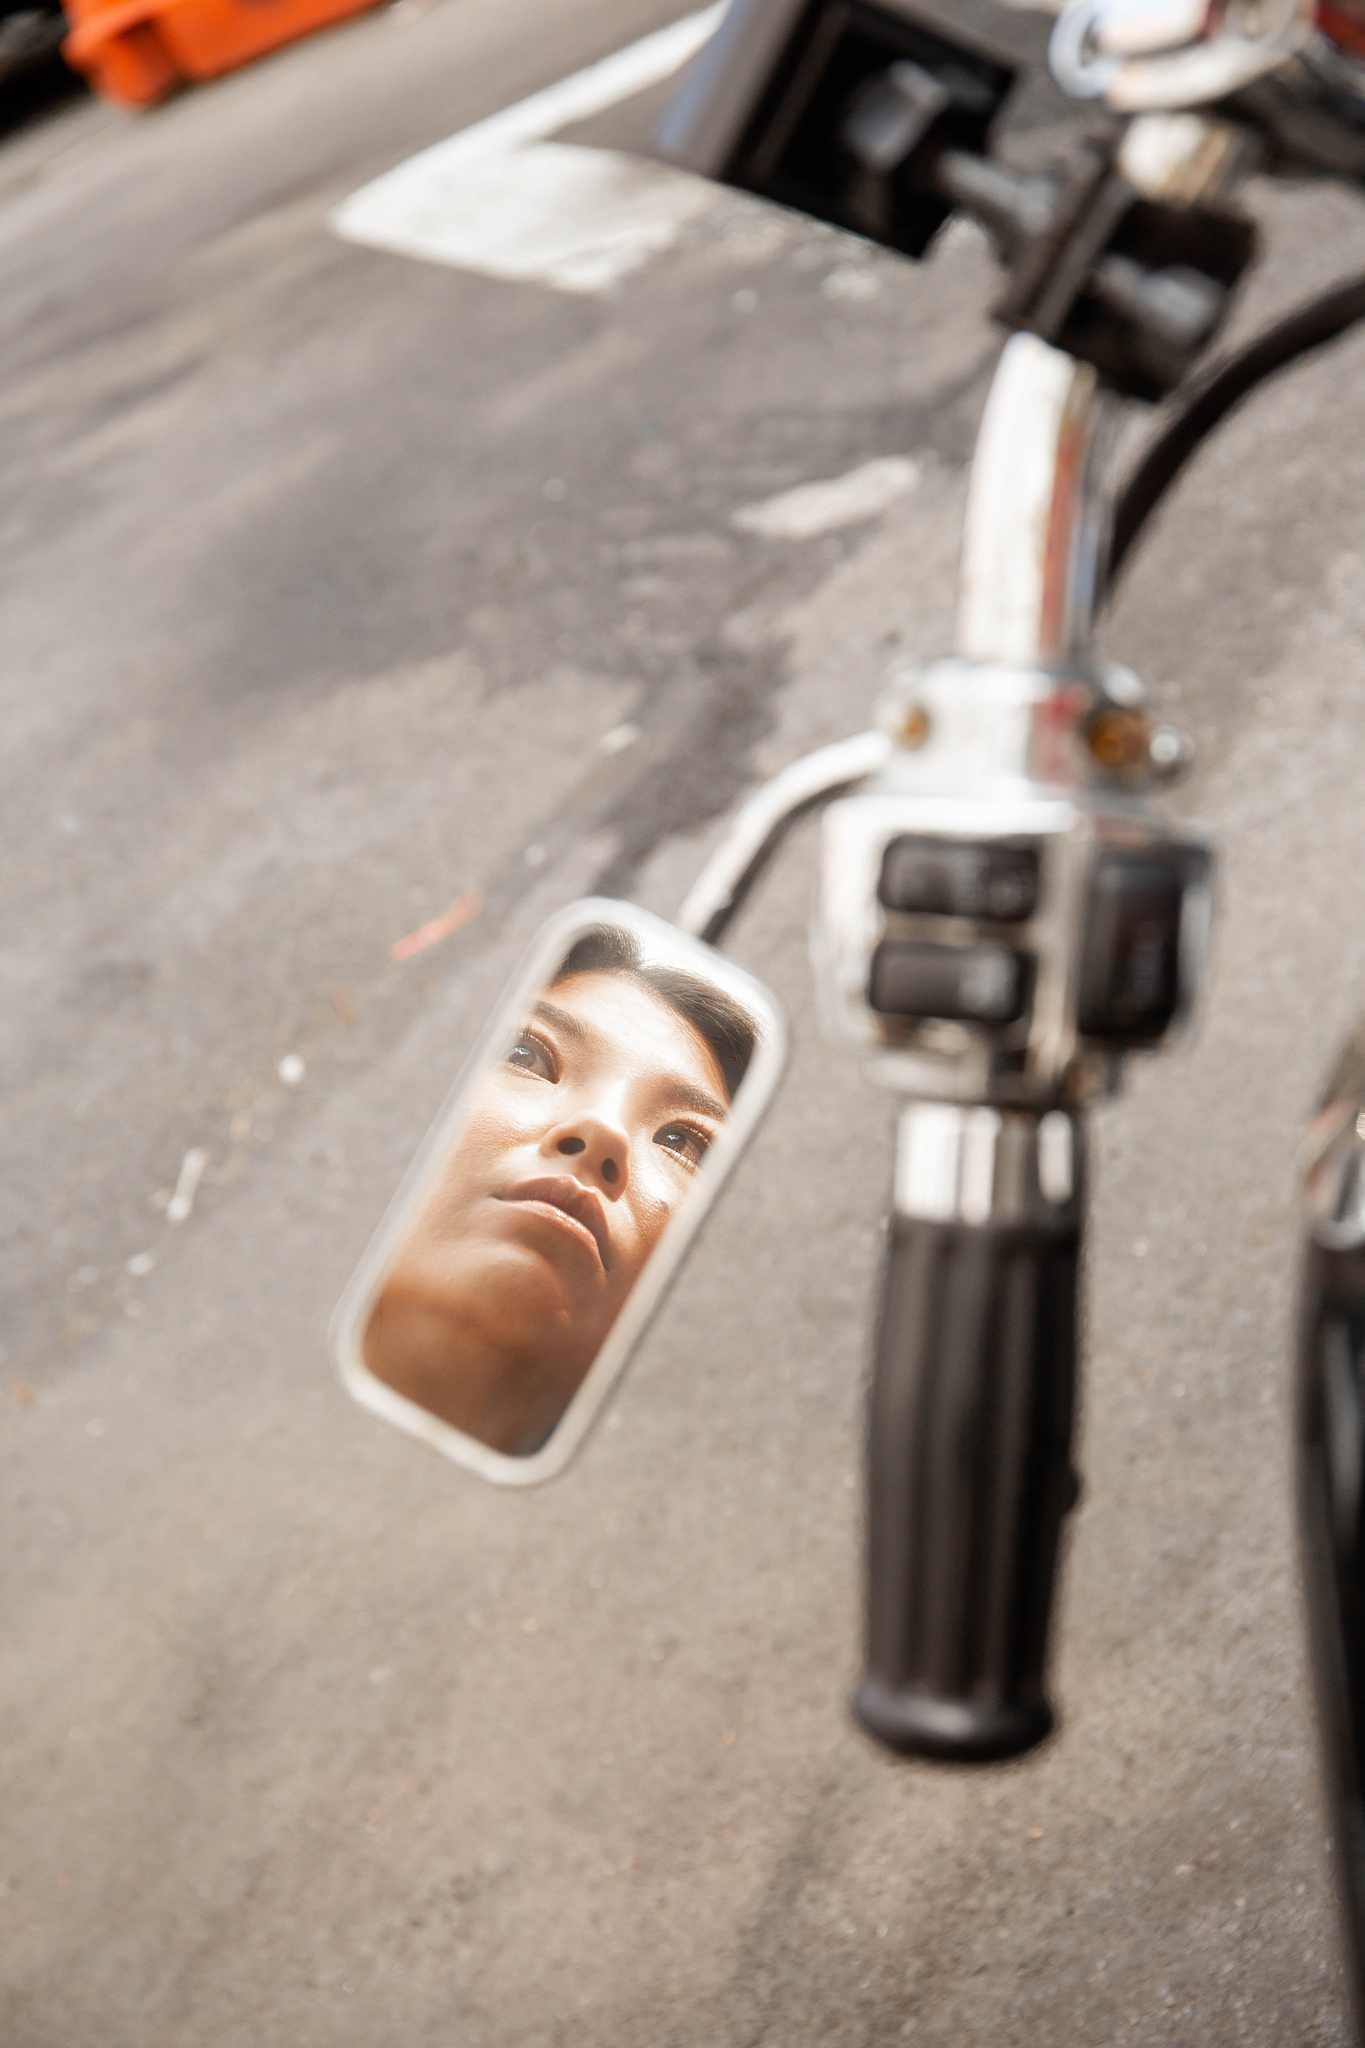 Mirror reflection bike